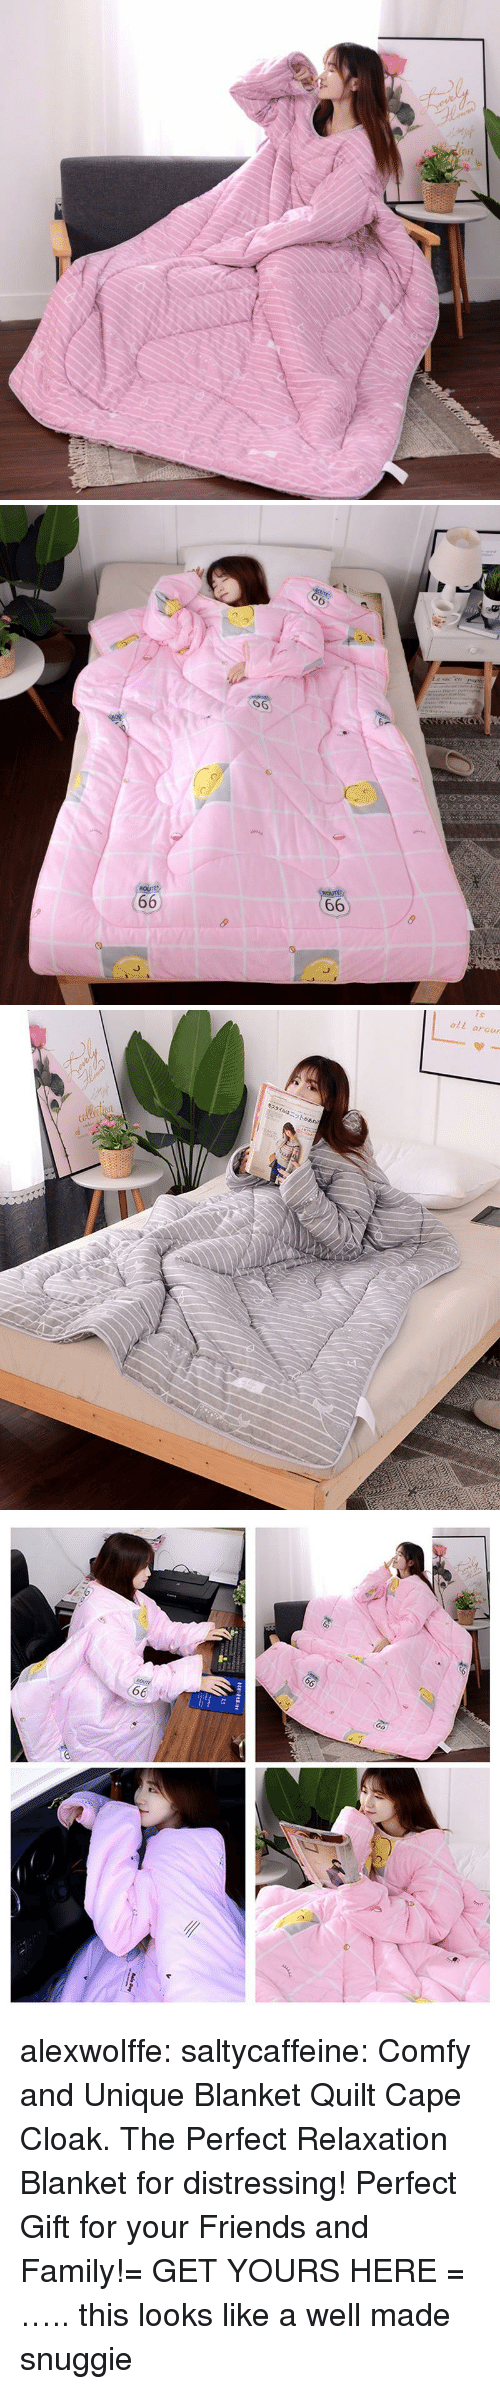 relaxation: 6  6   oll arour alexwolffe:  saltycaffeine:  Comfy and Unique Blanket Quilt Cape Cloak. The Perfect Relaxation Blanket for distressing! Perfect Gift for your Friends and Family!= GET YOURS HERE =  ….. this looks like a well made snuggie